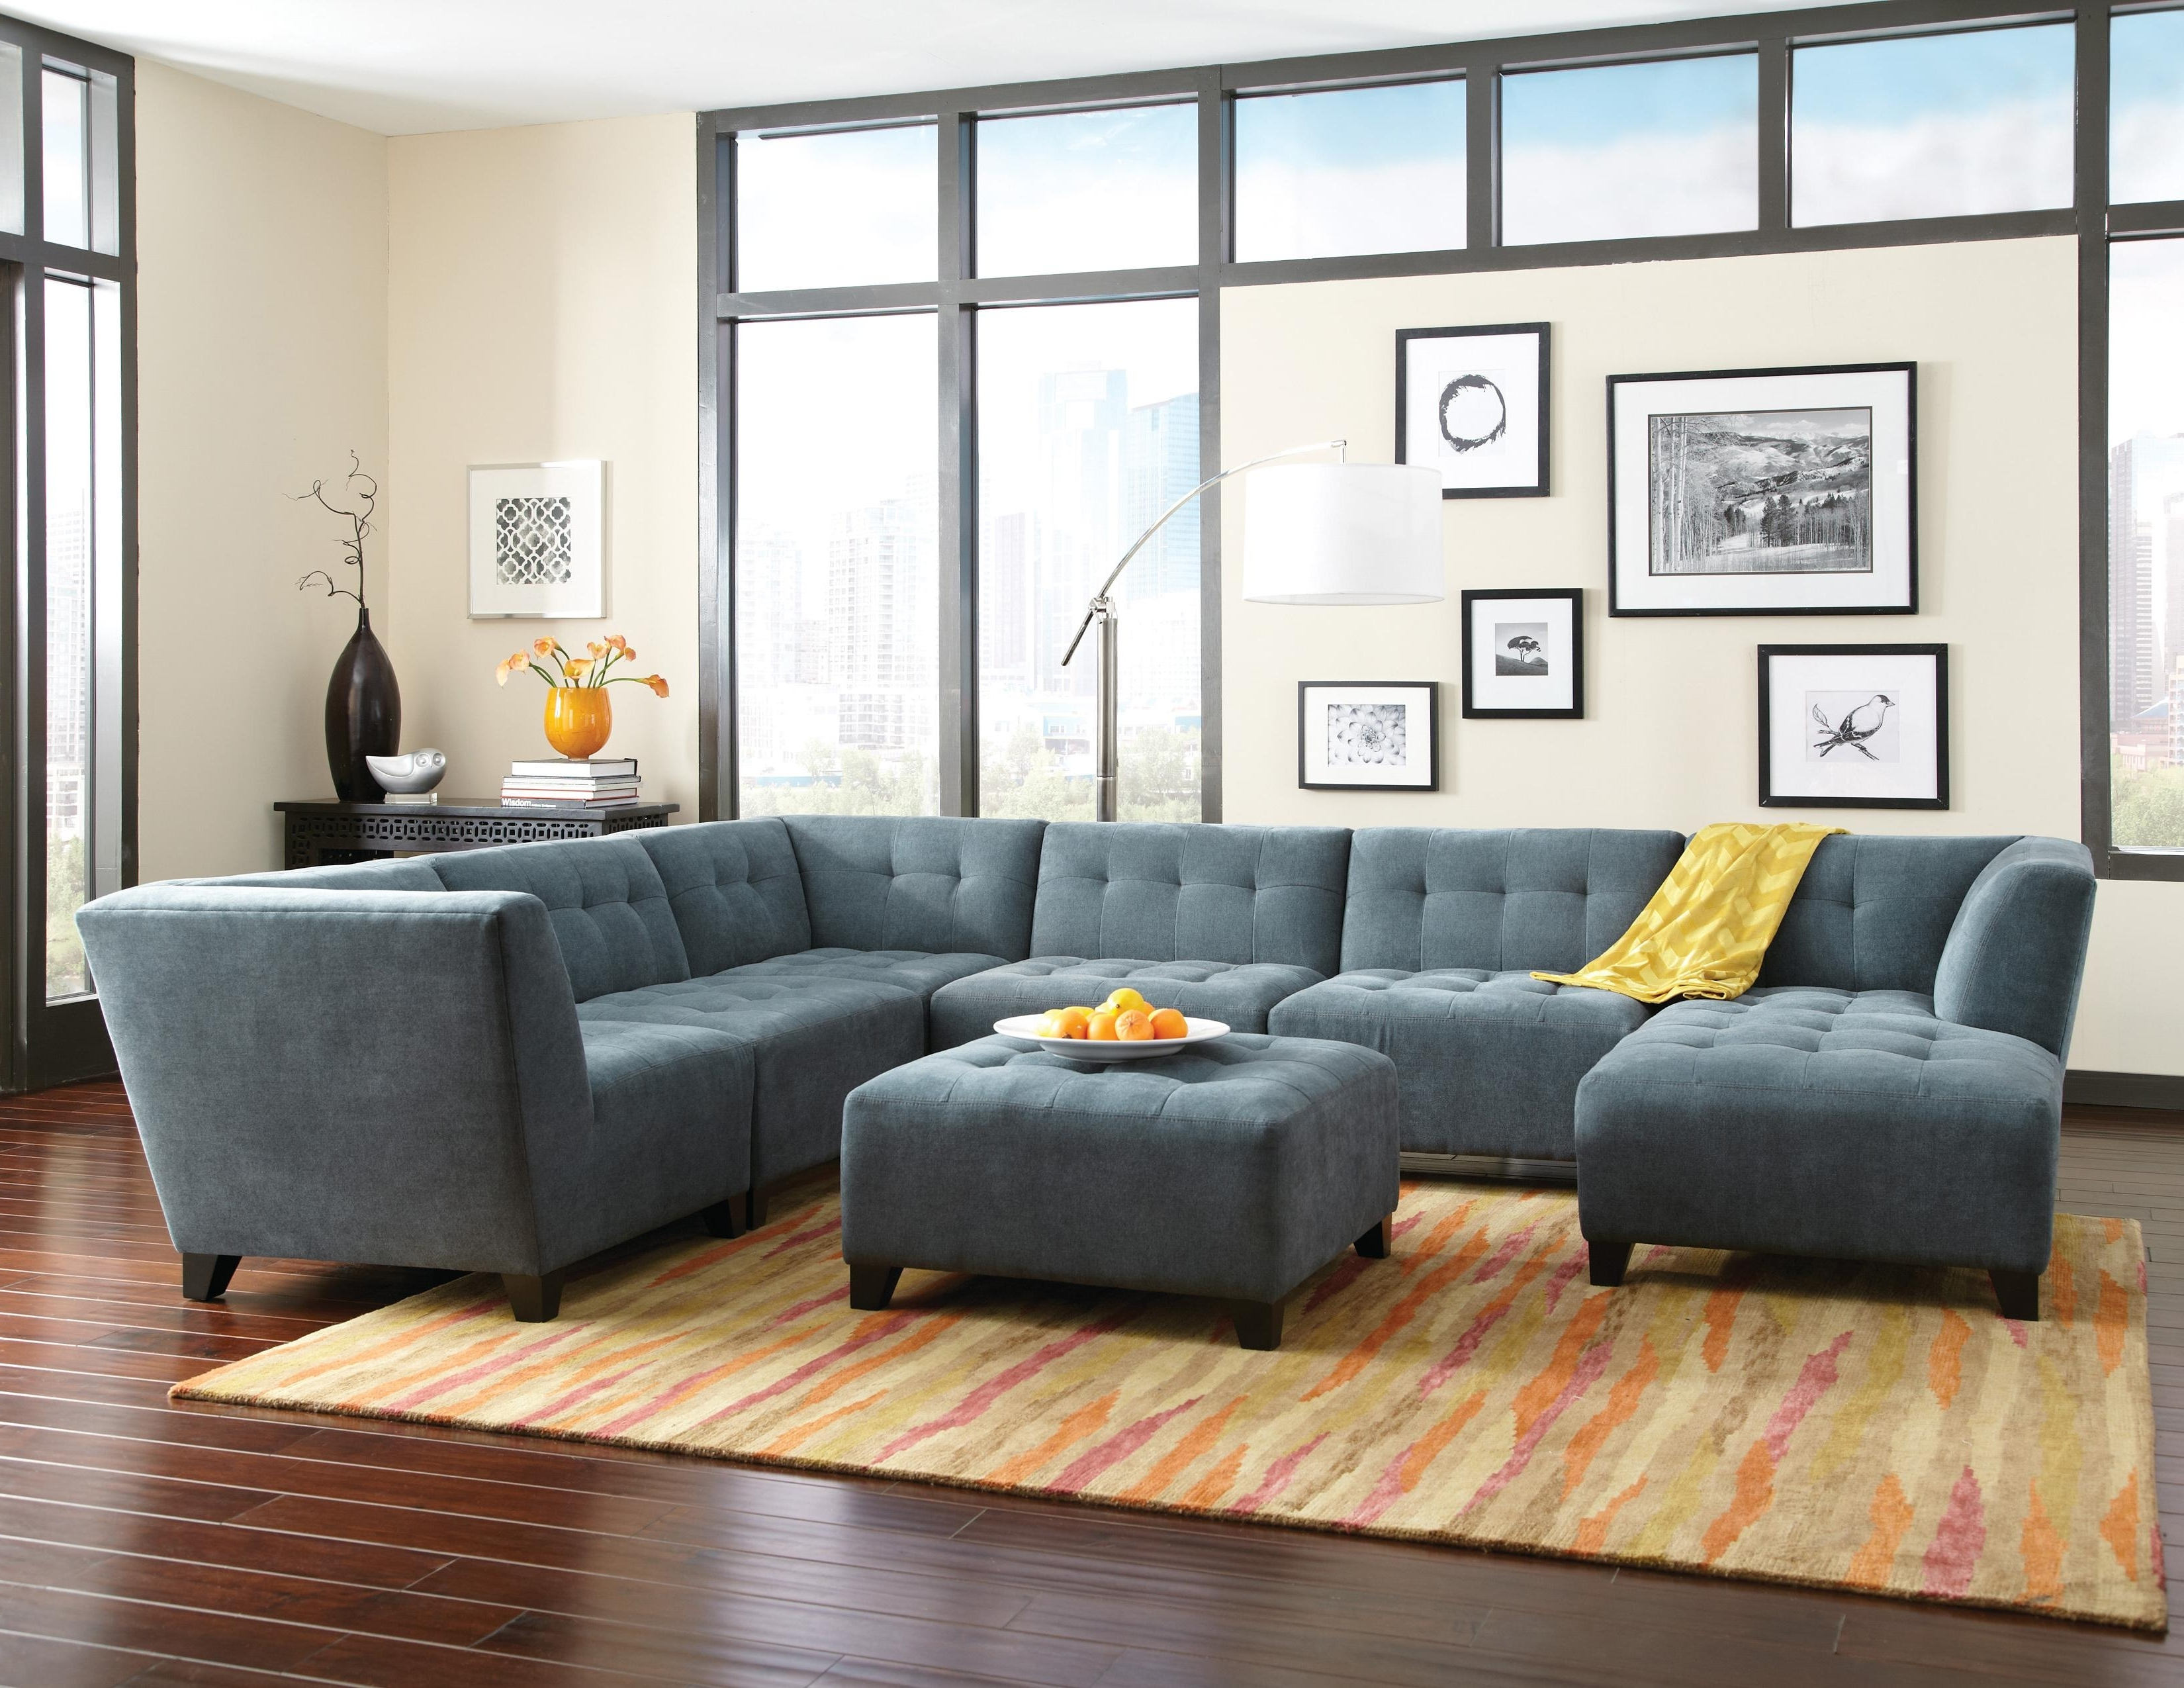 Louis Sectional Sofa – Home Design Ideas And Pictures Throughout Most Popular Homemakers Sectional Sofas (View 15 of 20)